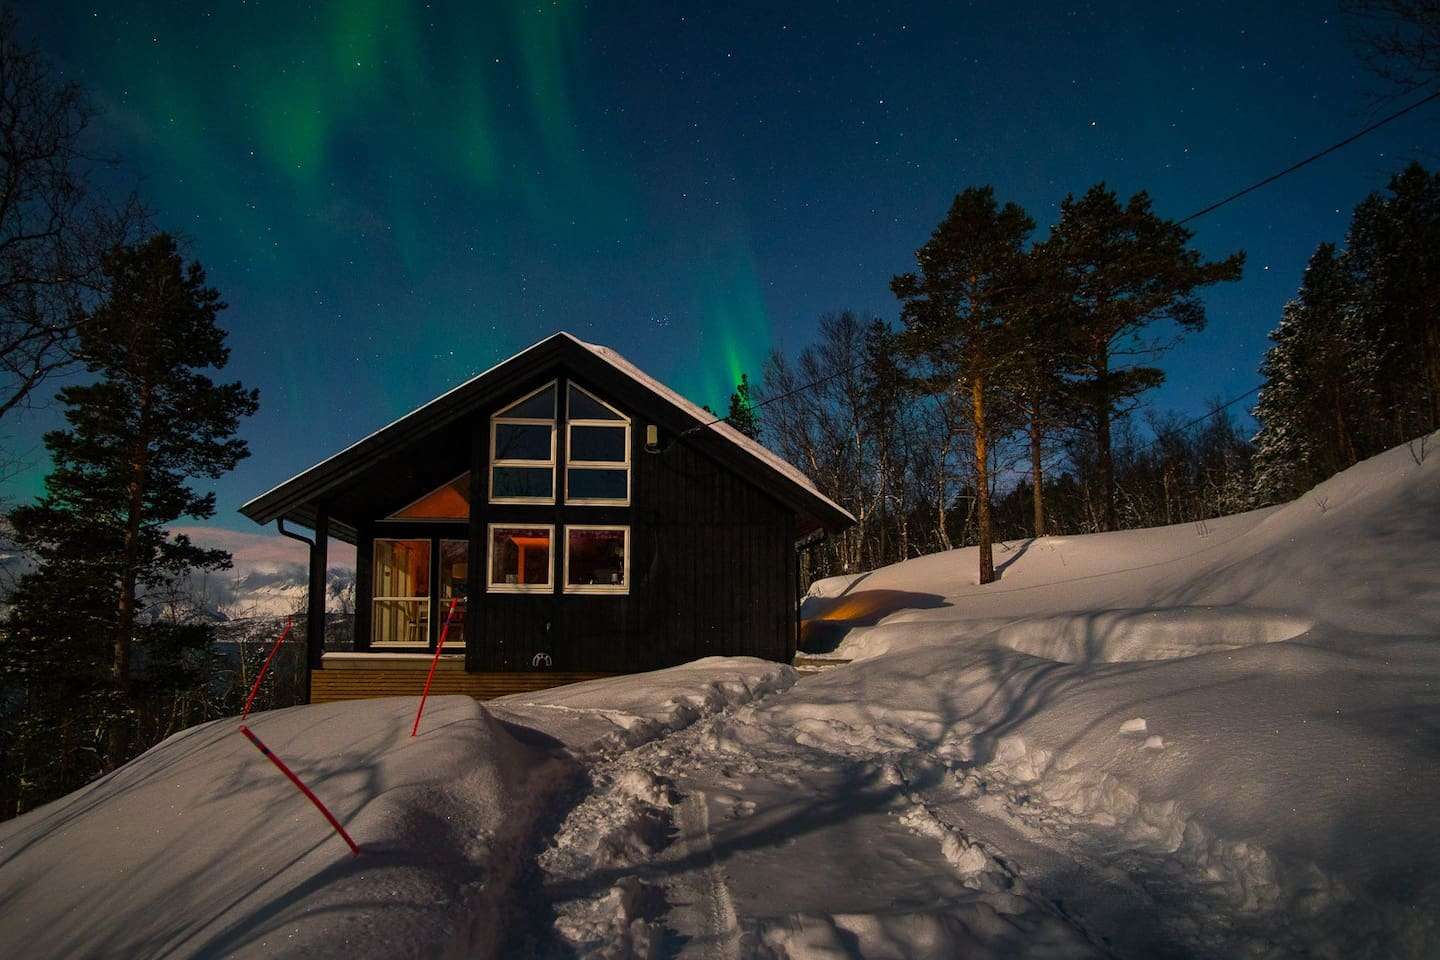 Warm and cosy cabin with a great view